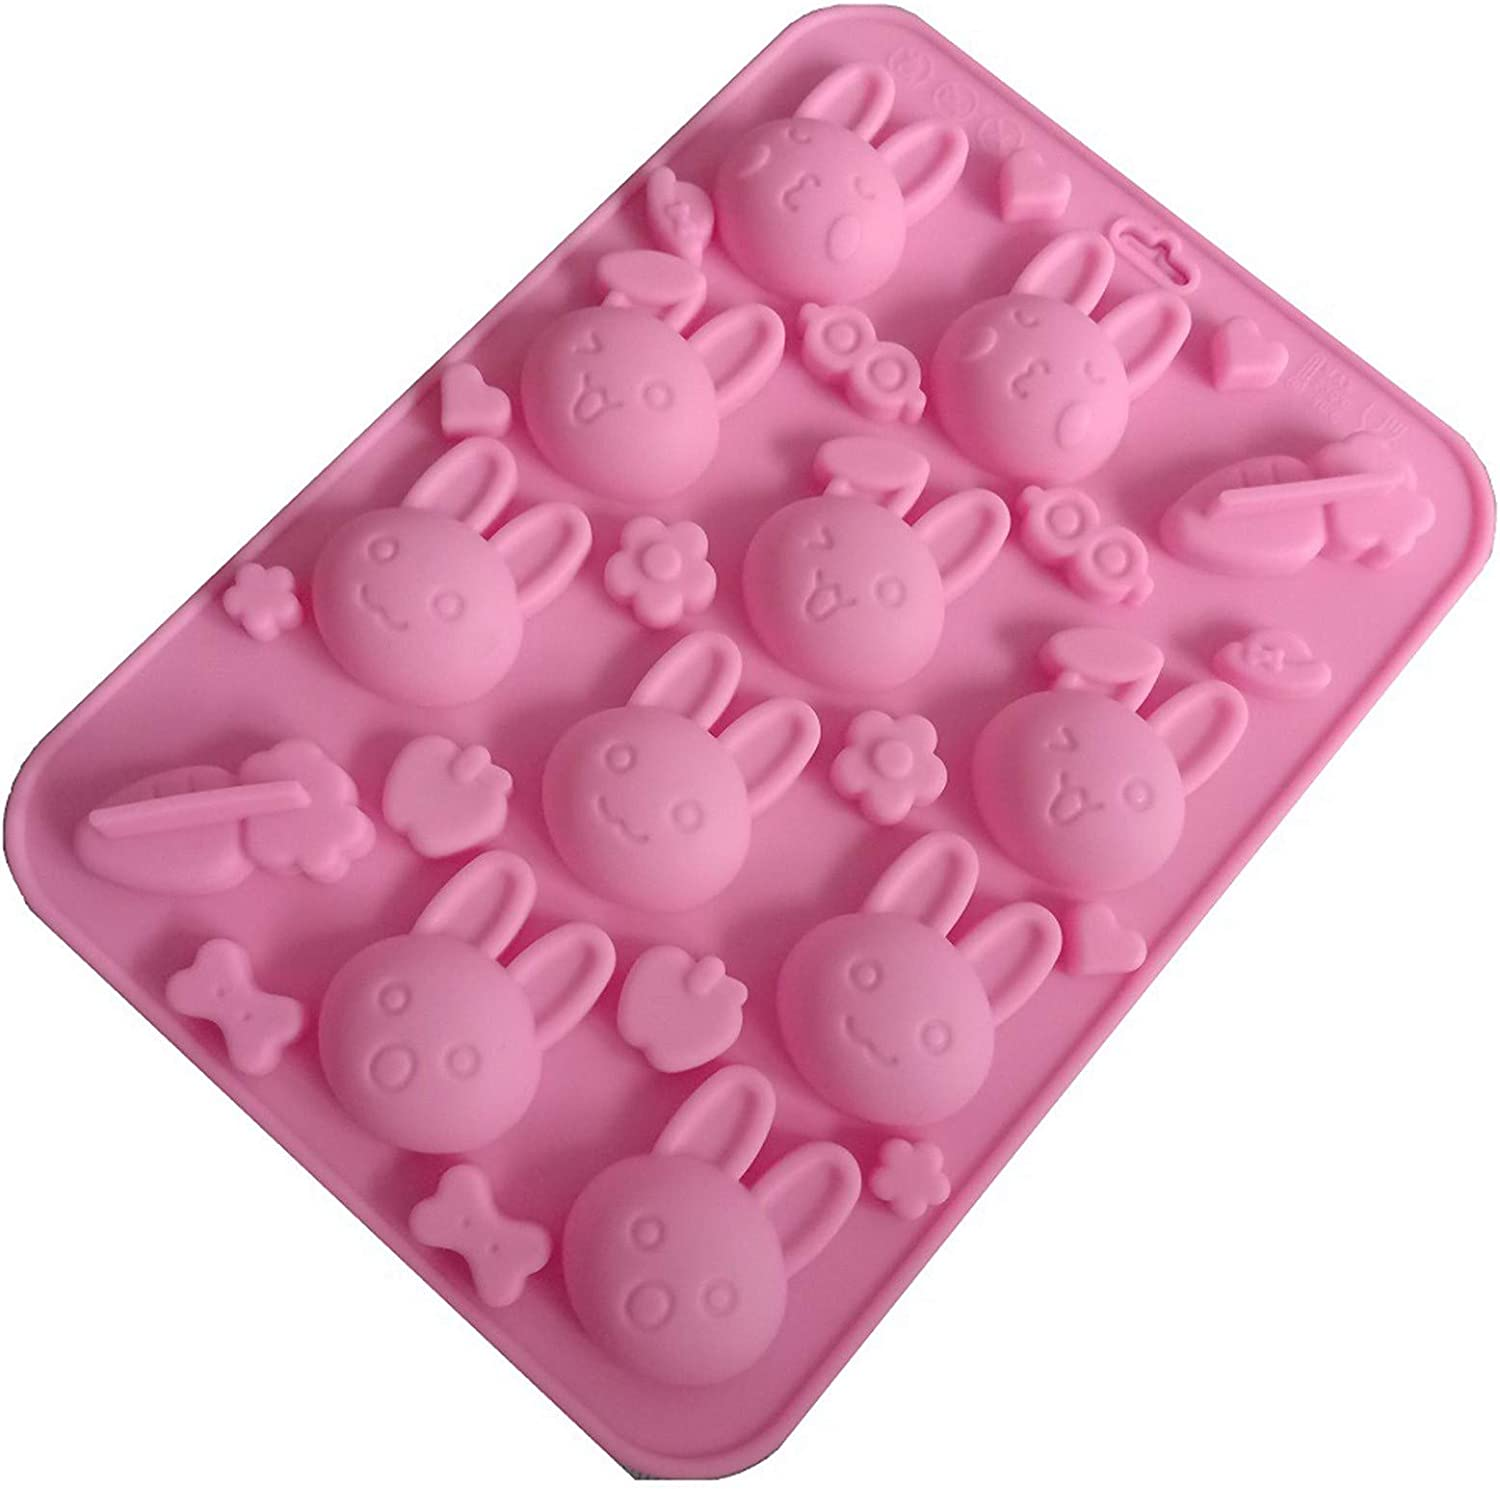 3D Flowers-Leafs Molds, Non-Stick Silicone Molds DIY Fondant Sugar Pudding Soap Candle Mould Food Grade Silicone for Wedding Valentine Cake Chocolate Dessert Cookie Mousse Cheesecake Decorating